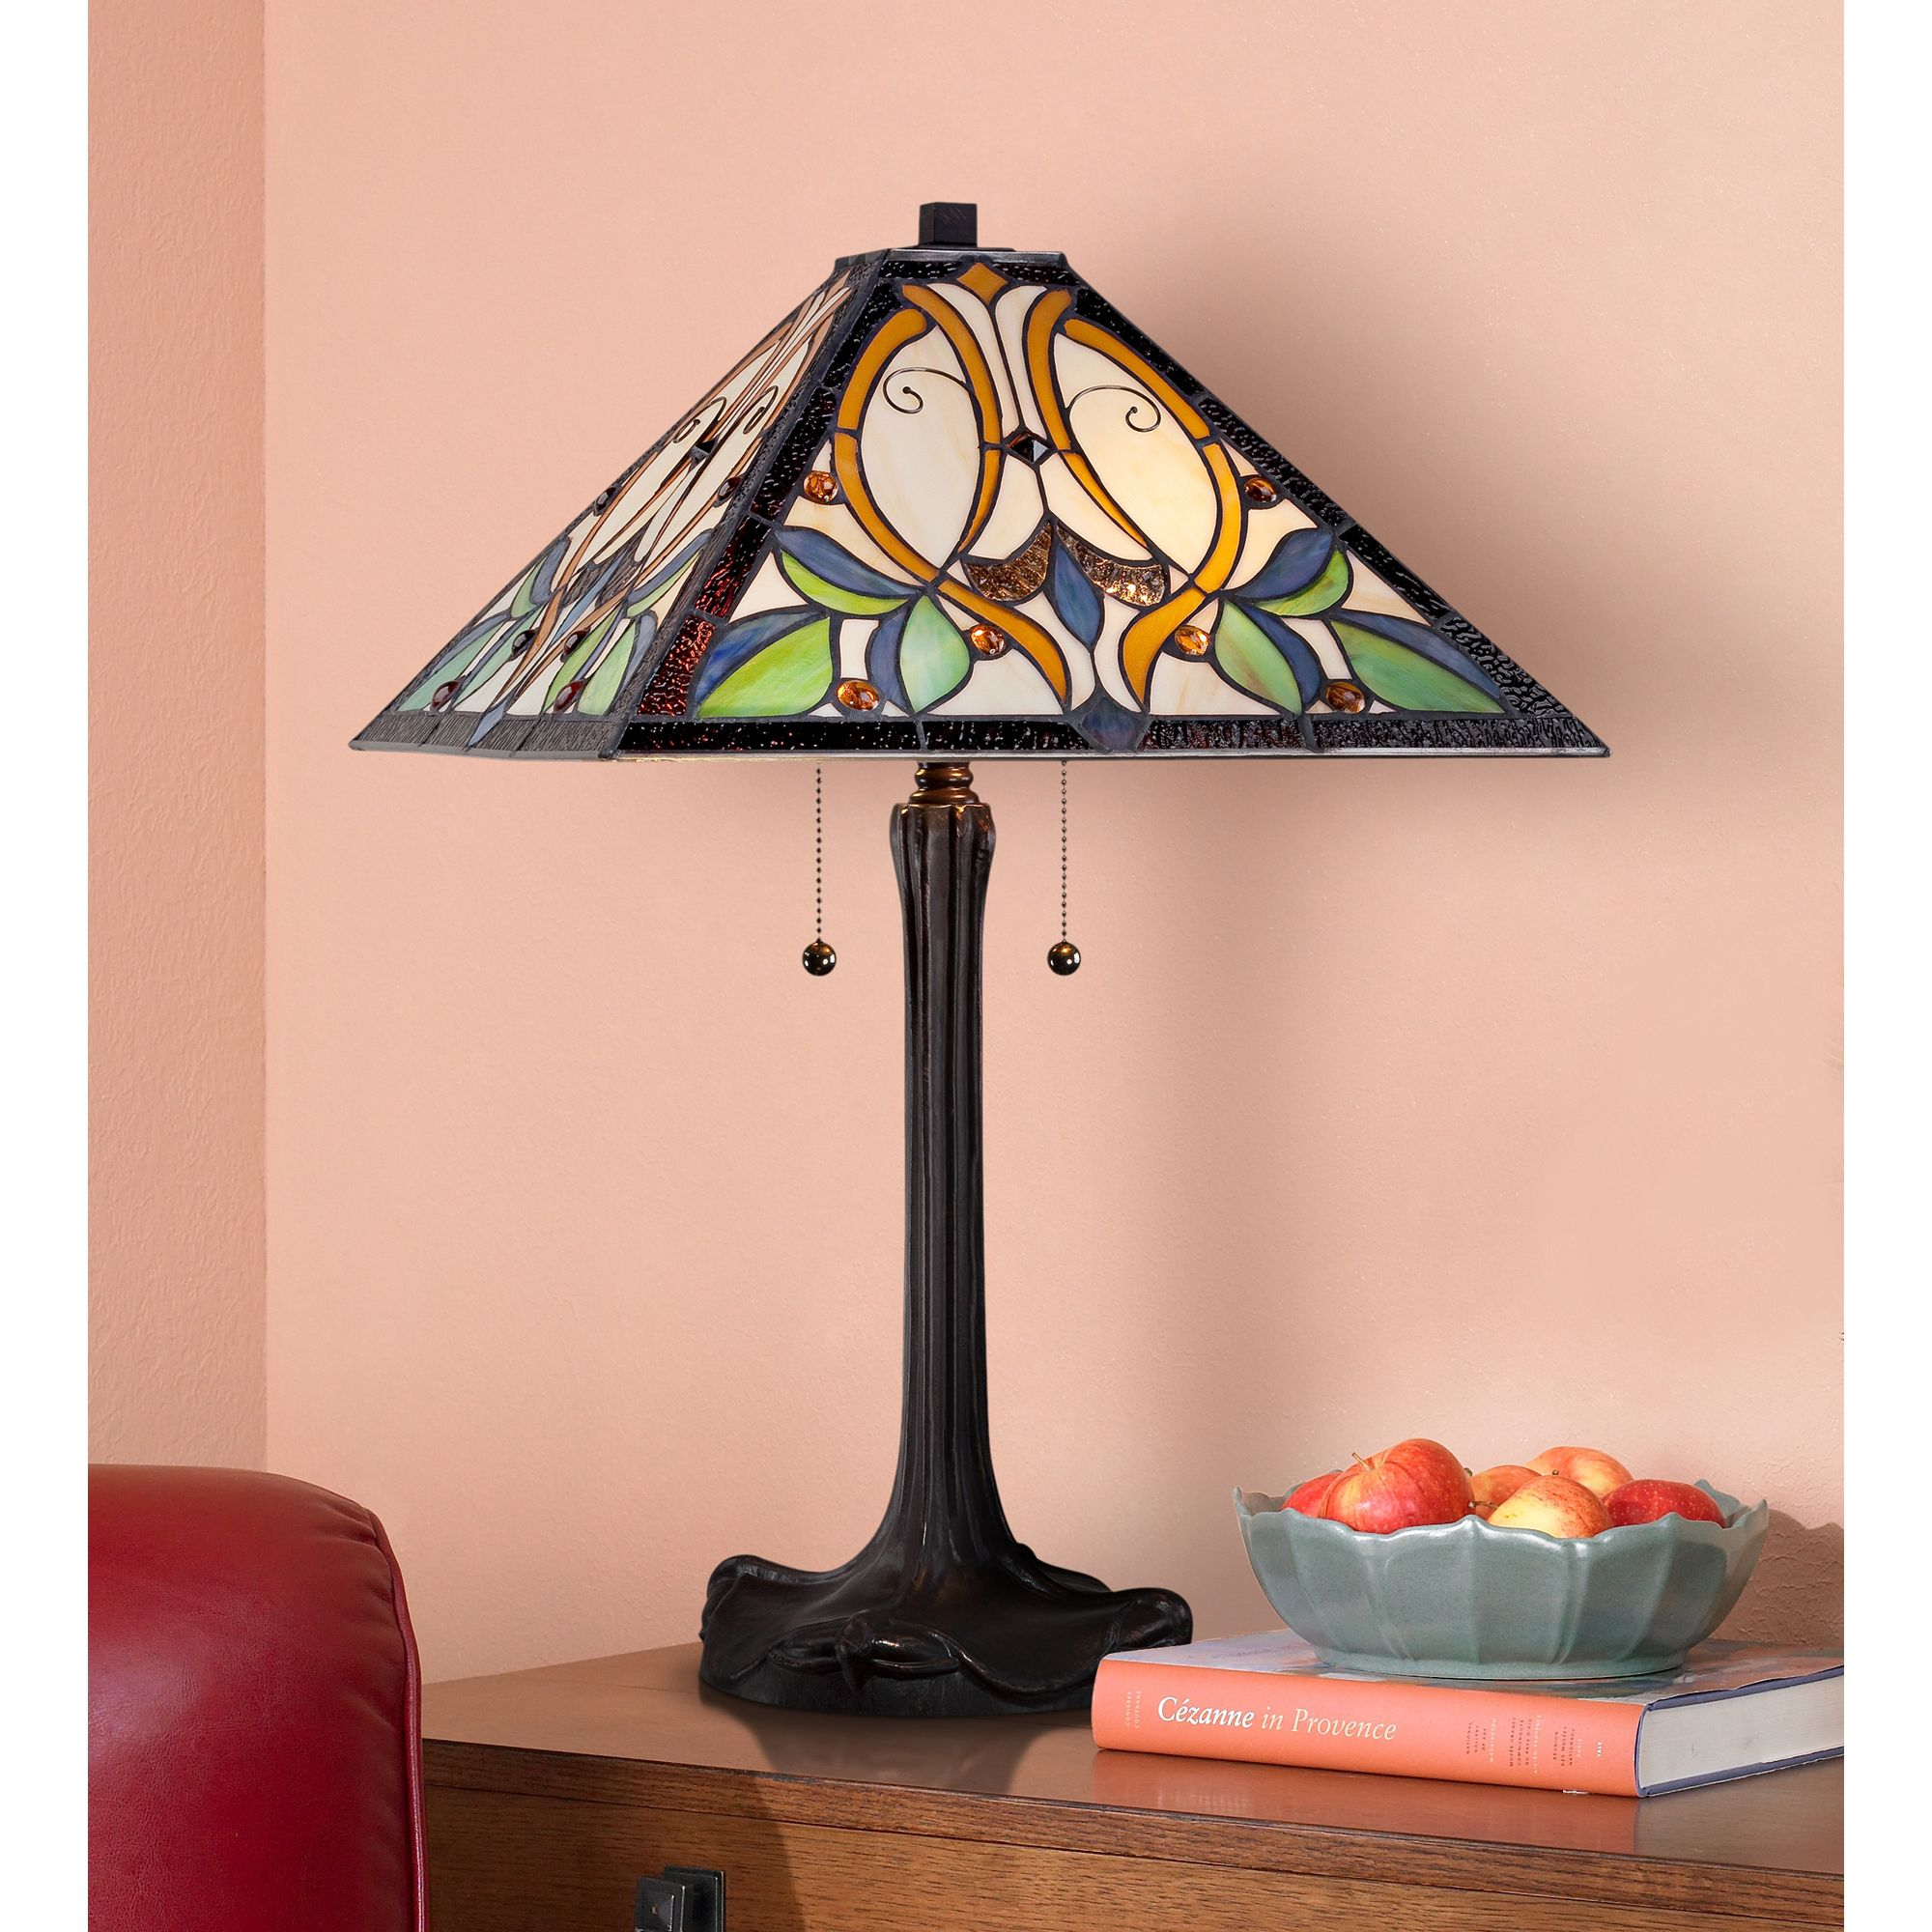 Robert Louis Tiffany Table Lamp Bronze Tiffany Style Stained Glass Art Shade for Living Room Family Bedroom Bedside Nightstand